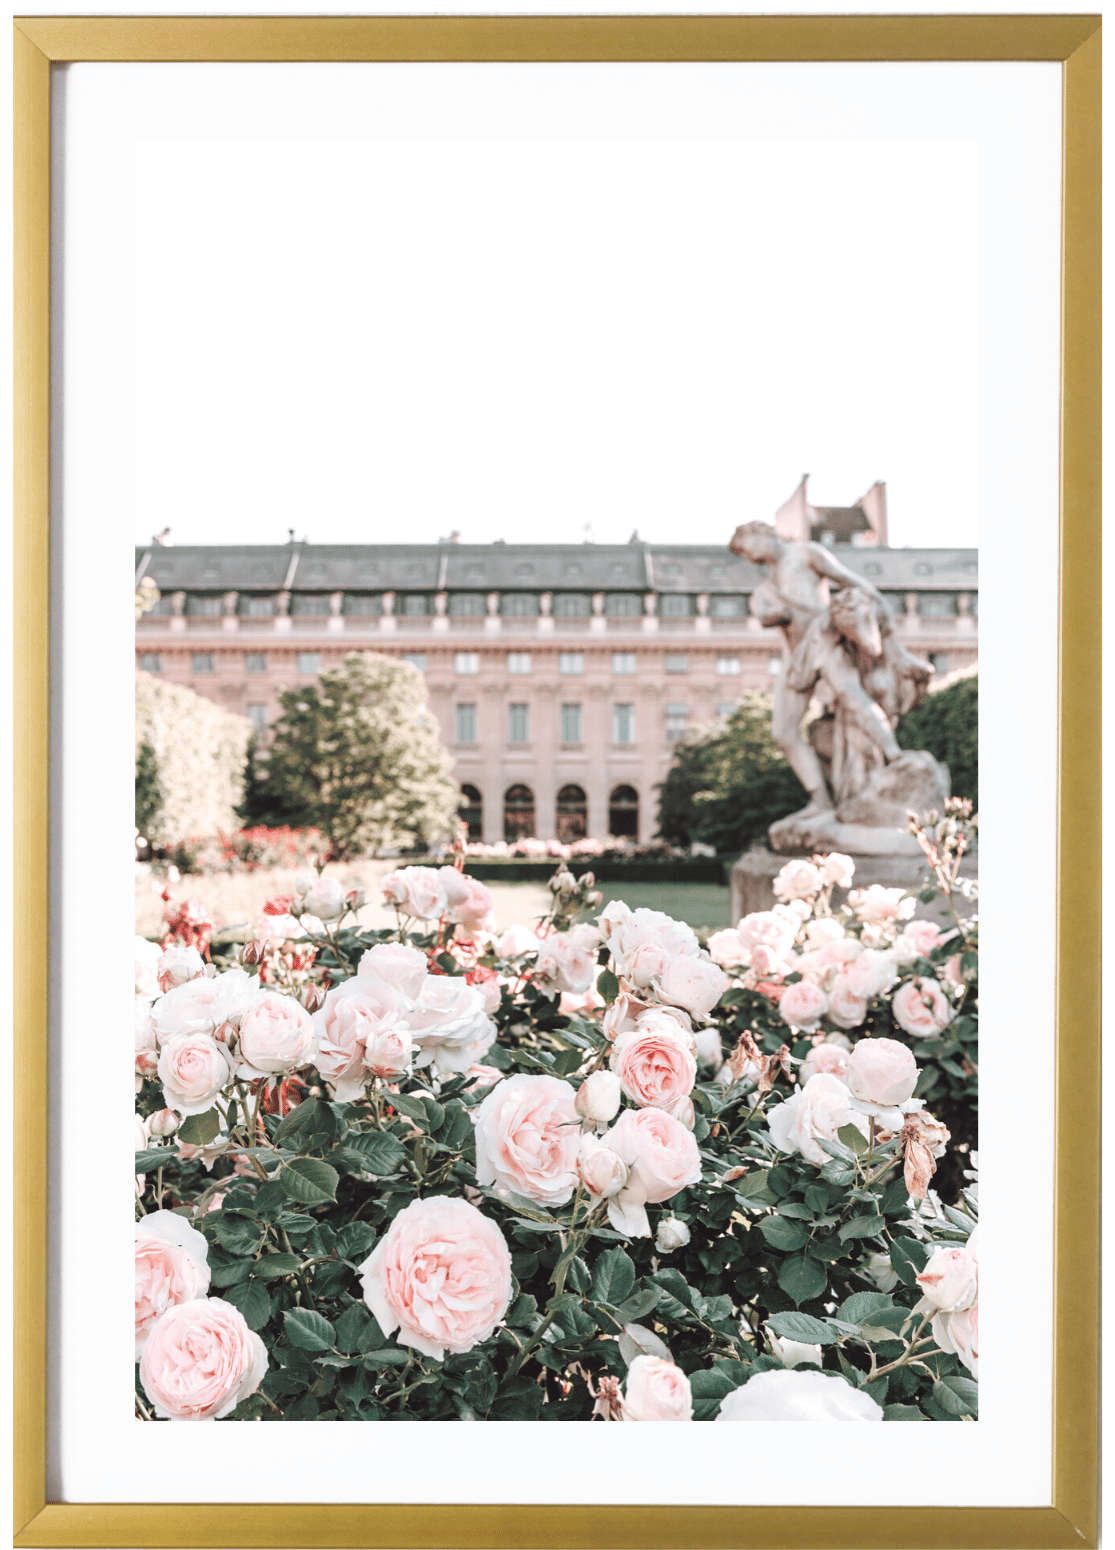 SALE - Paris Print - Palais Royal #2 24x36